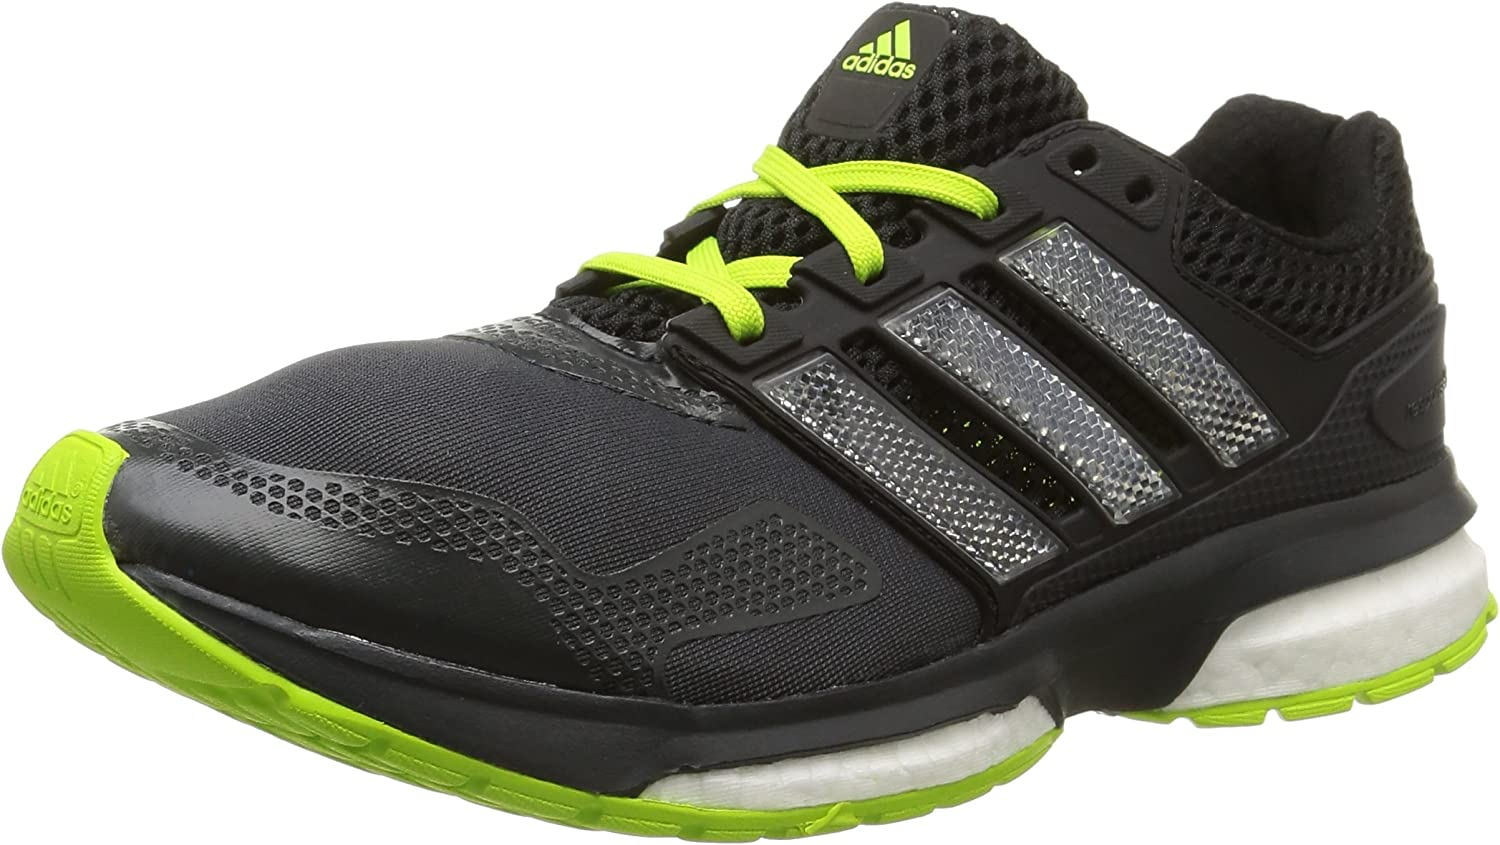 Adidas Response Boost 2 Techfit Running shoes - AW15